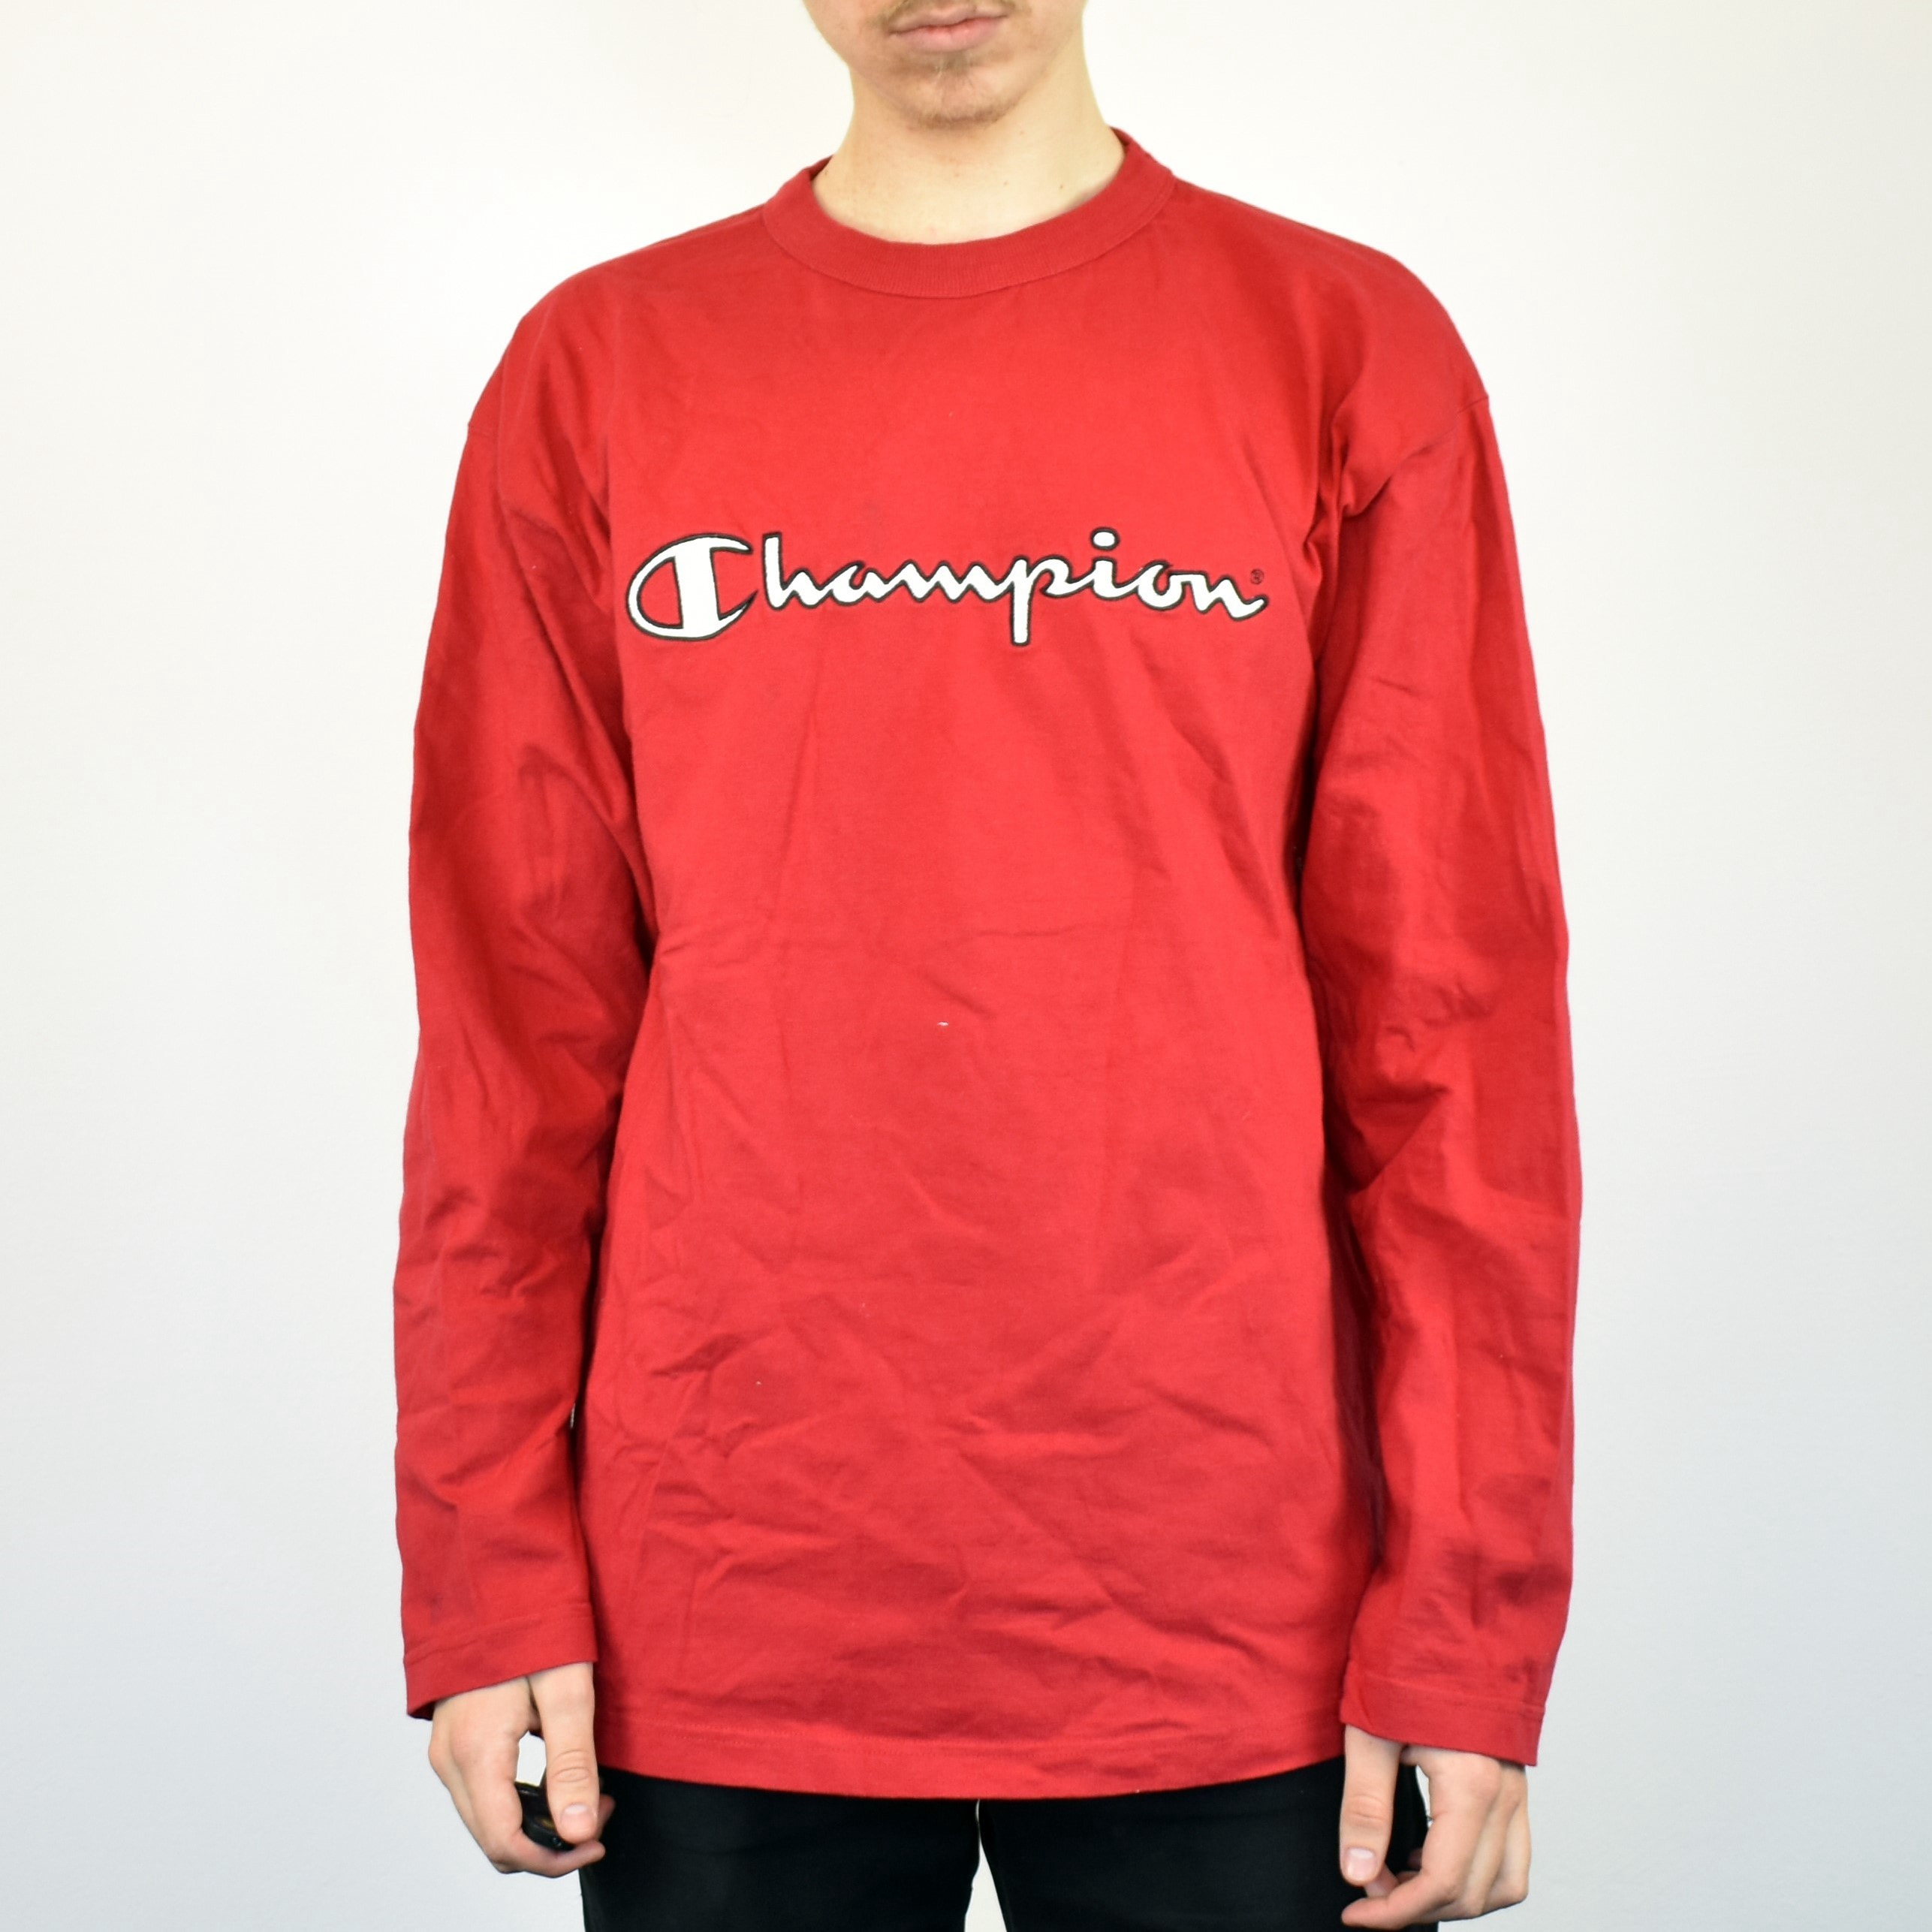 Unisex Vintage Champion longsleeve t-shirt in red has a big logo on the front size L